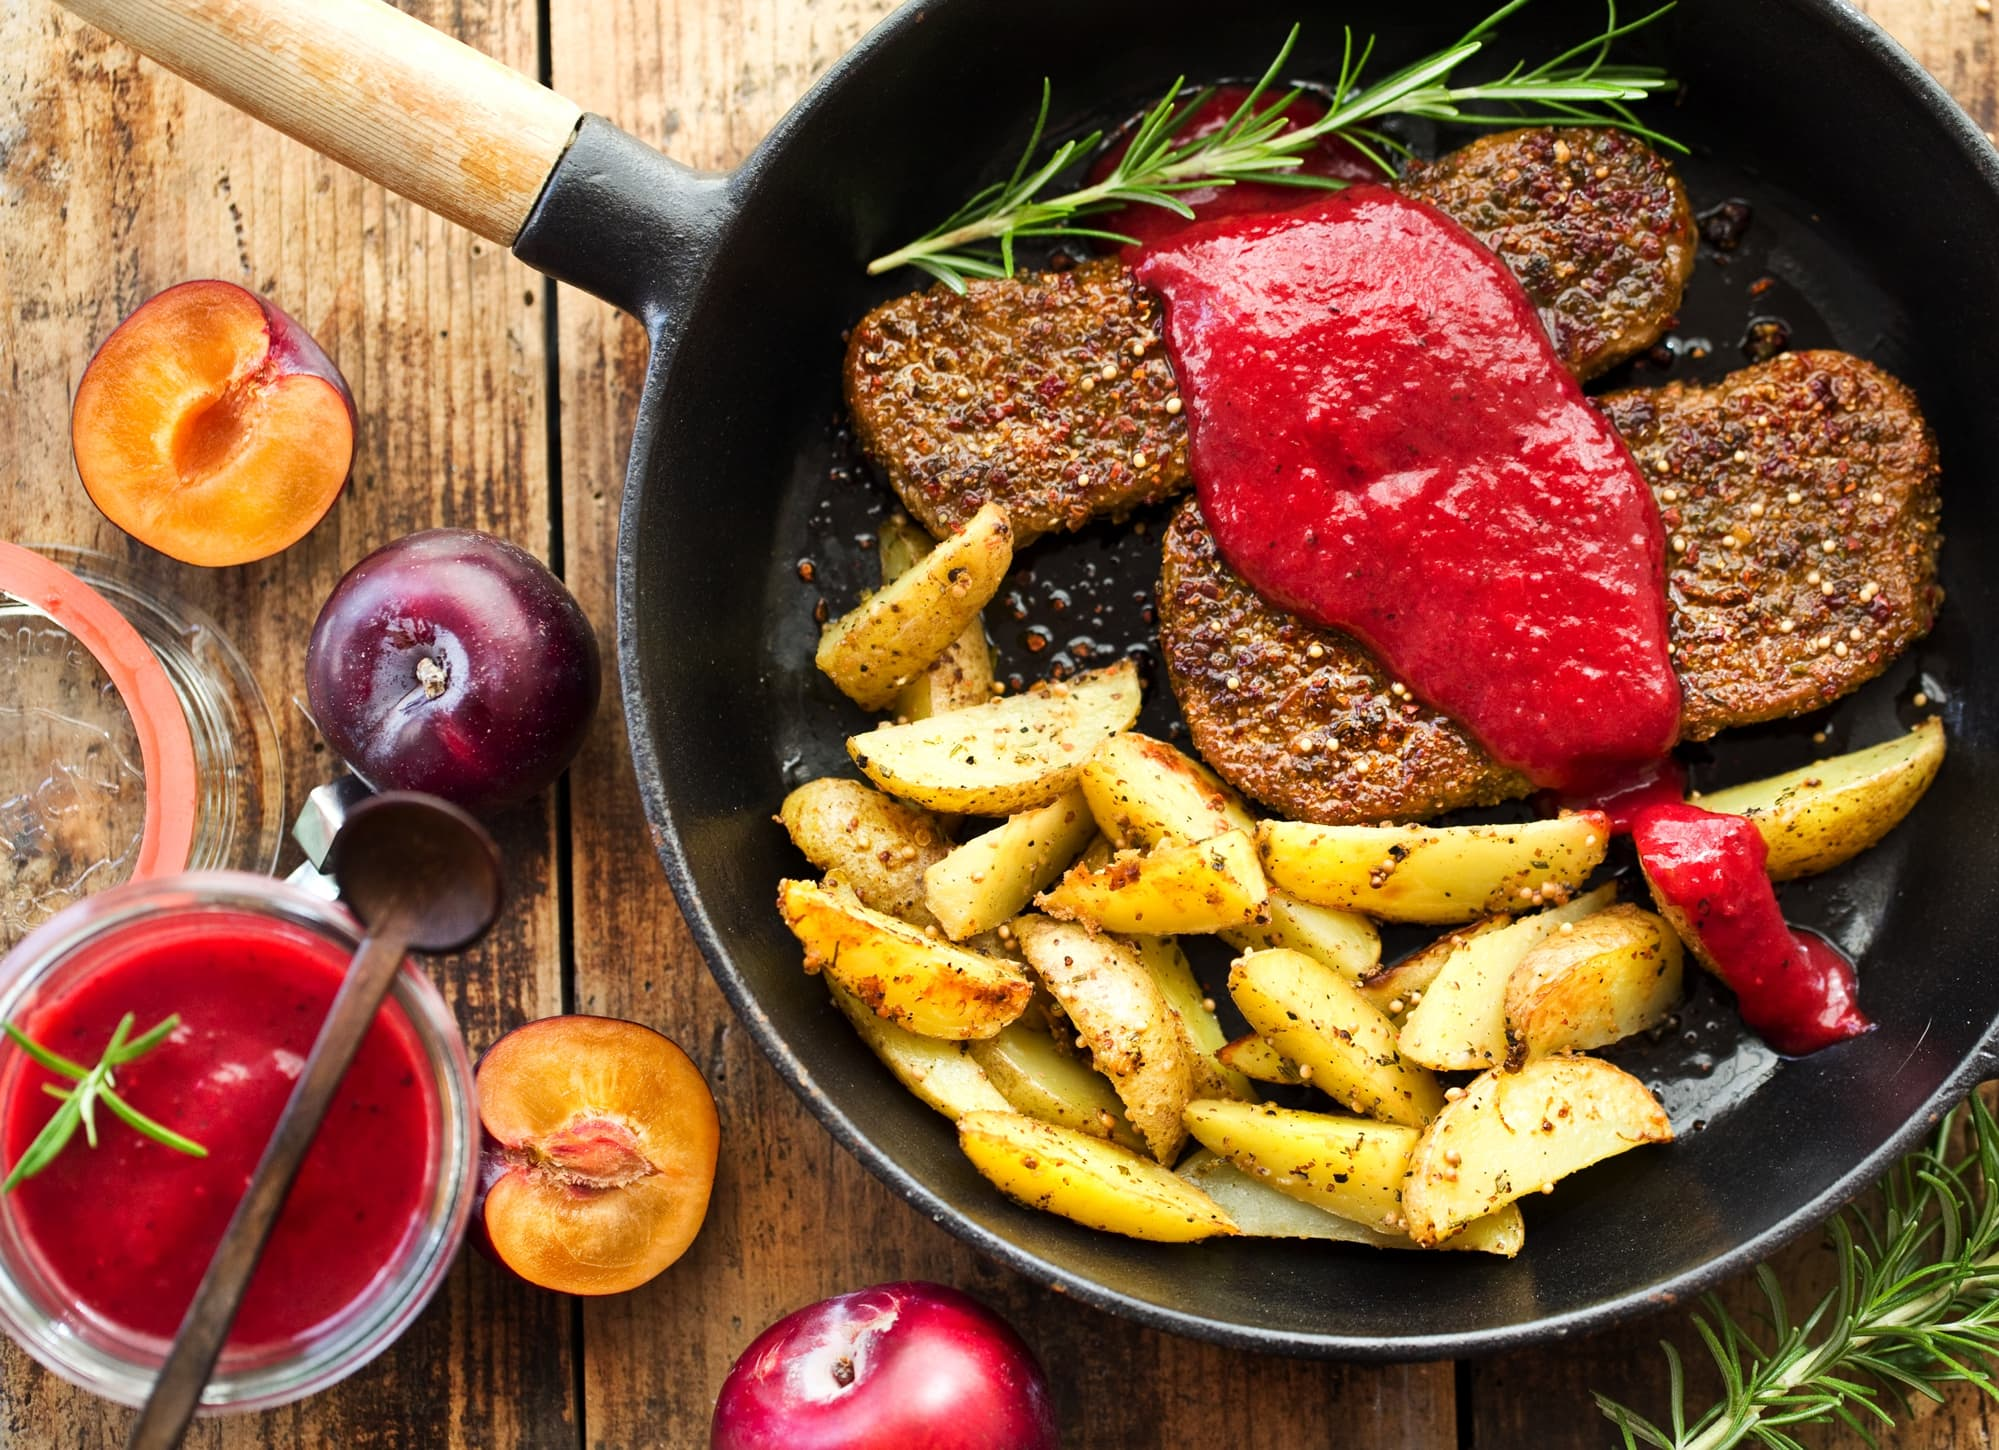 MUSTARD-AGAVE COUNTRY POTATOES WITH PLUM KETCHUP